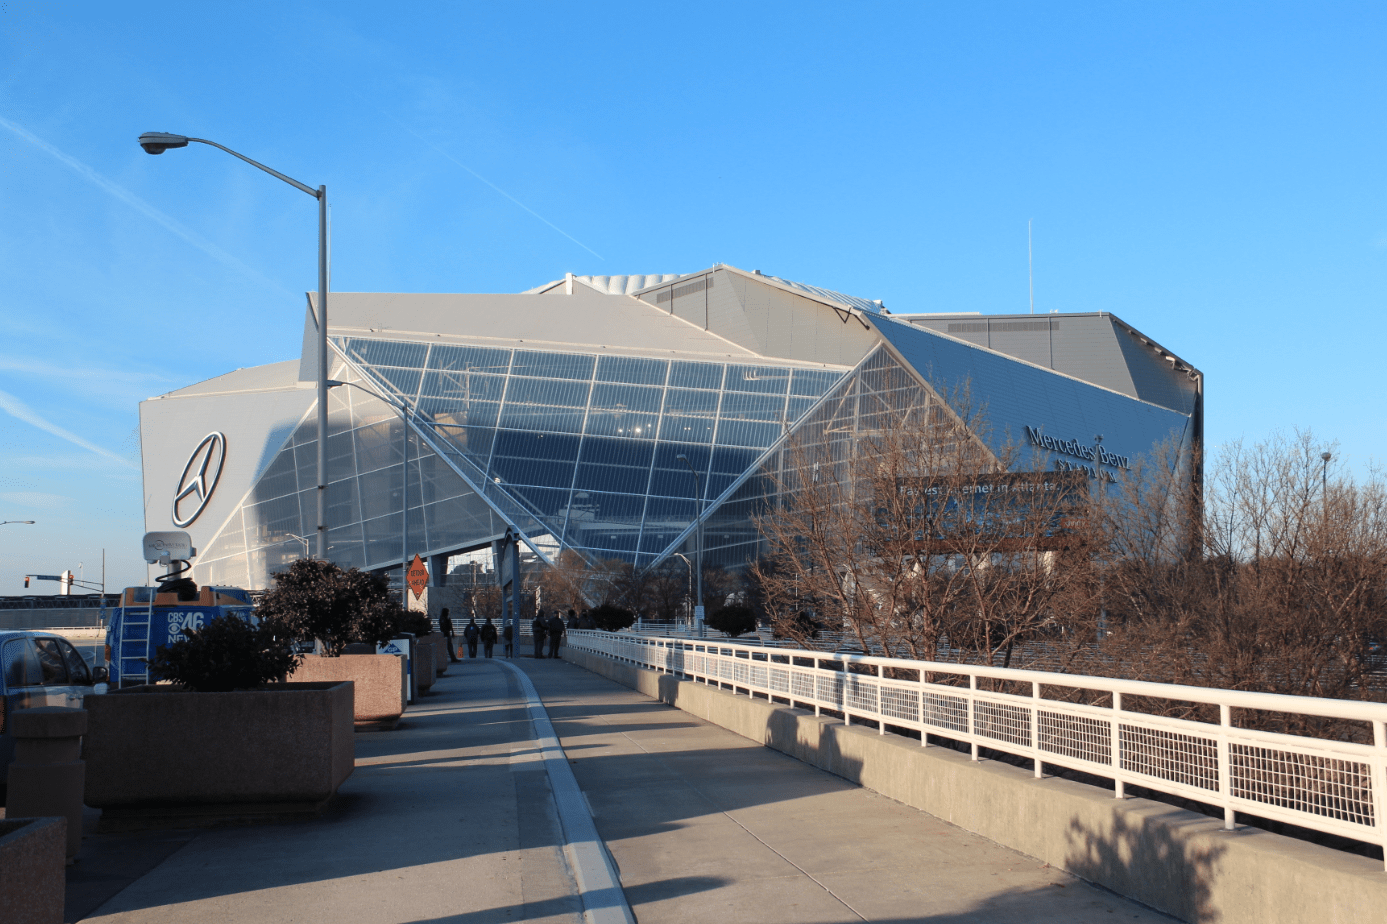 The Mercedez-Benz Superdome, where Super Bowl LIII was played.